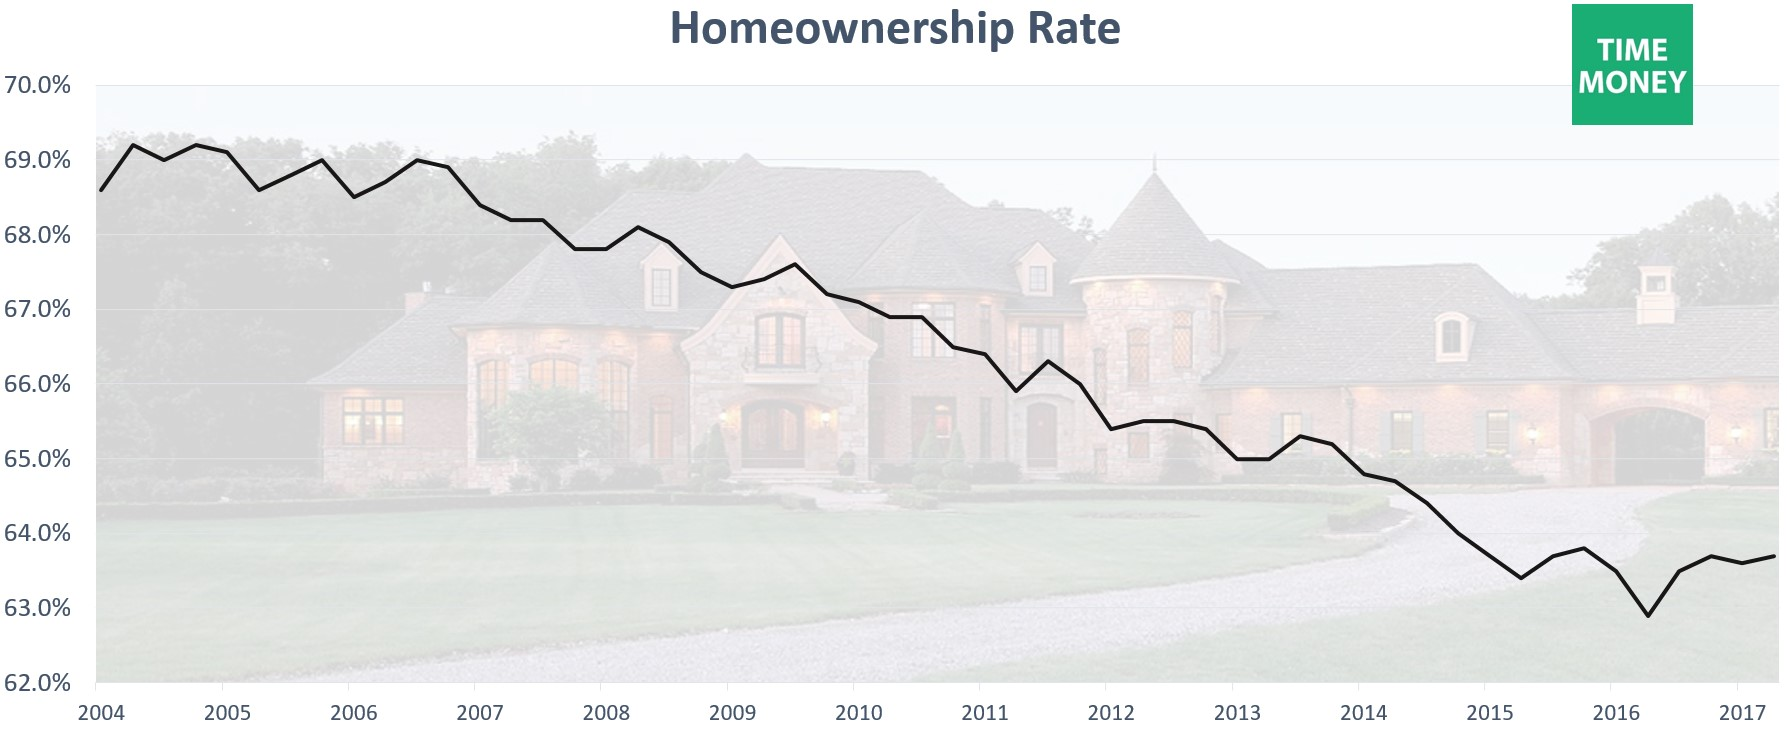 Declining Homeownership Rate Since Housing Bubble